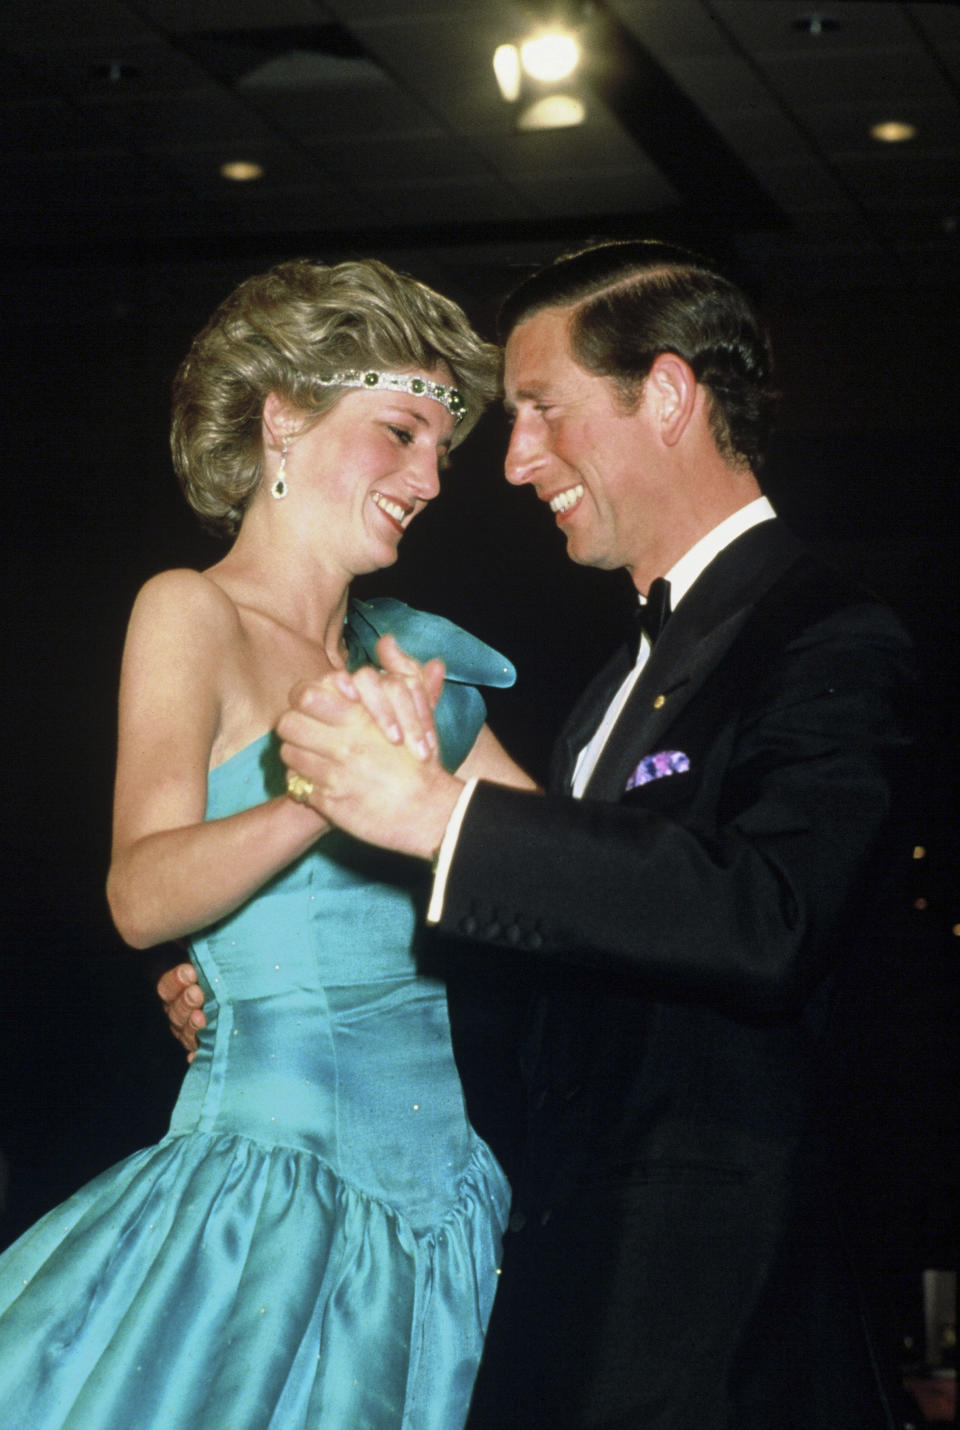 Happier times: The Royal couple dancing in Melbourne, Australia, in 1985. (Getty)